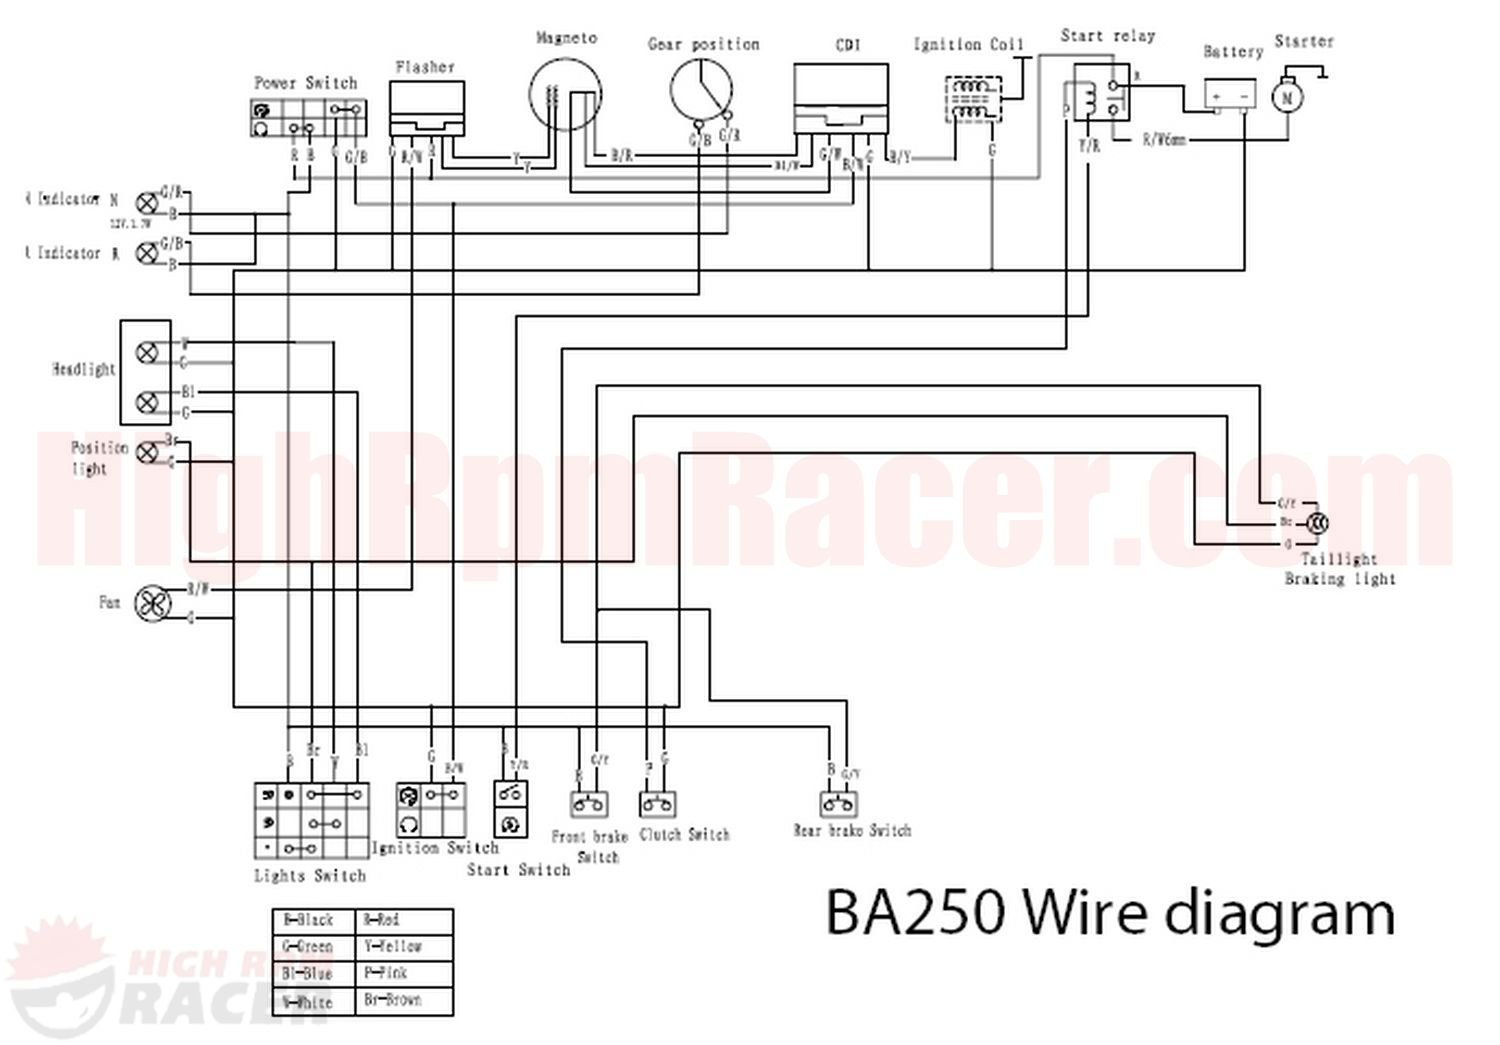 2007 baja 250 atv wiring diagram wiring diagram Yamaha Raptor 700 2007 baja 250 atv wiring diagram